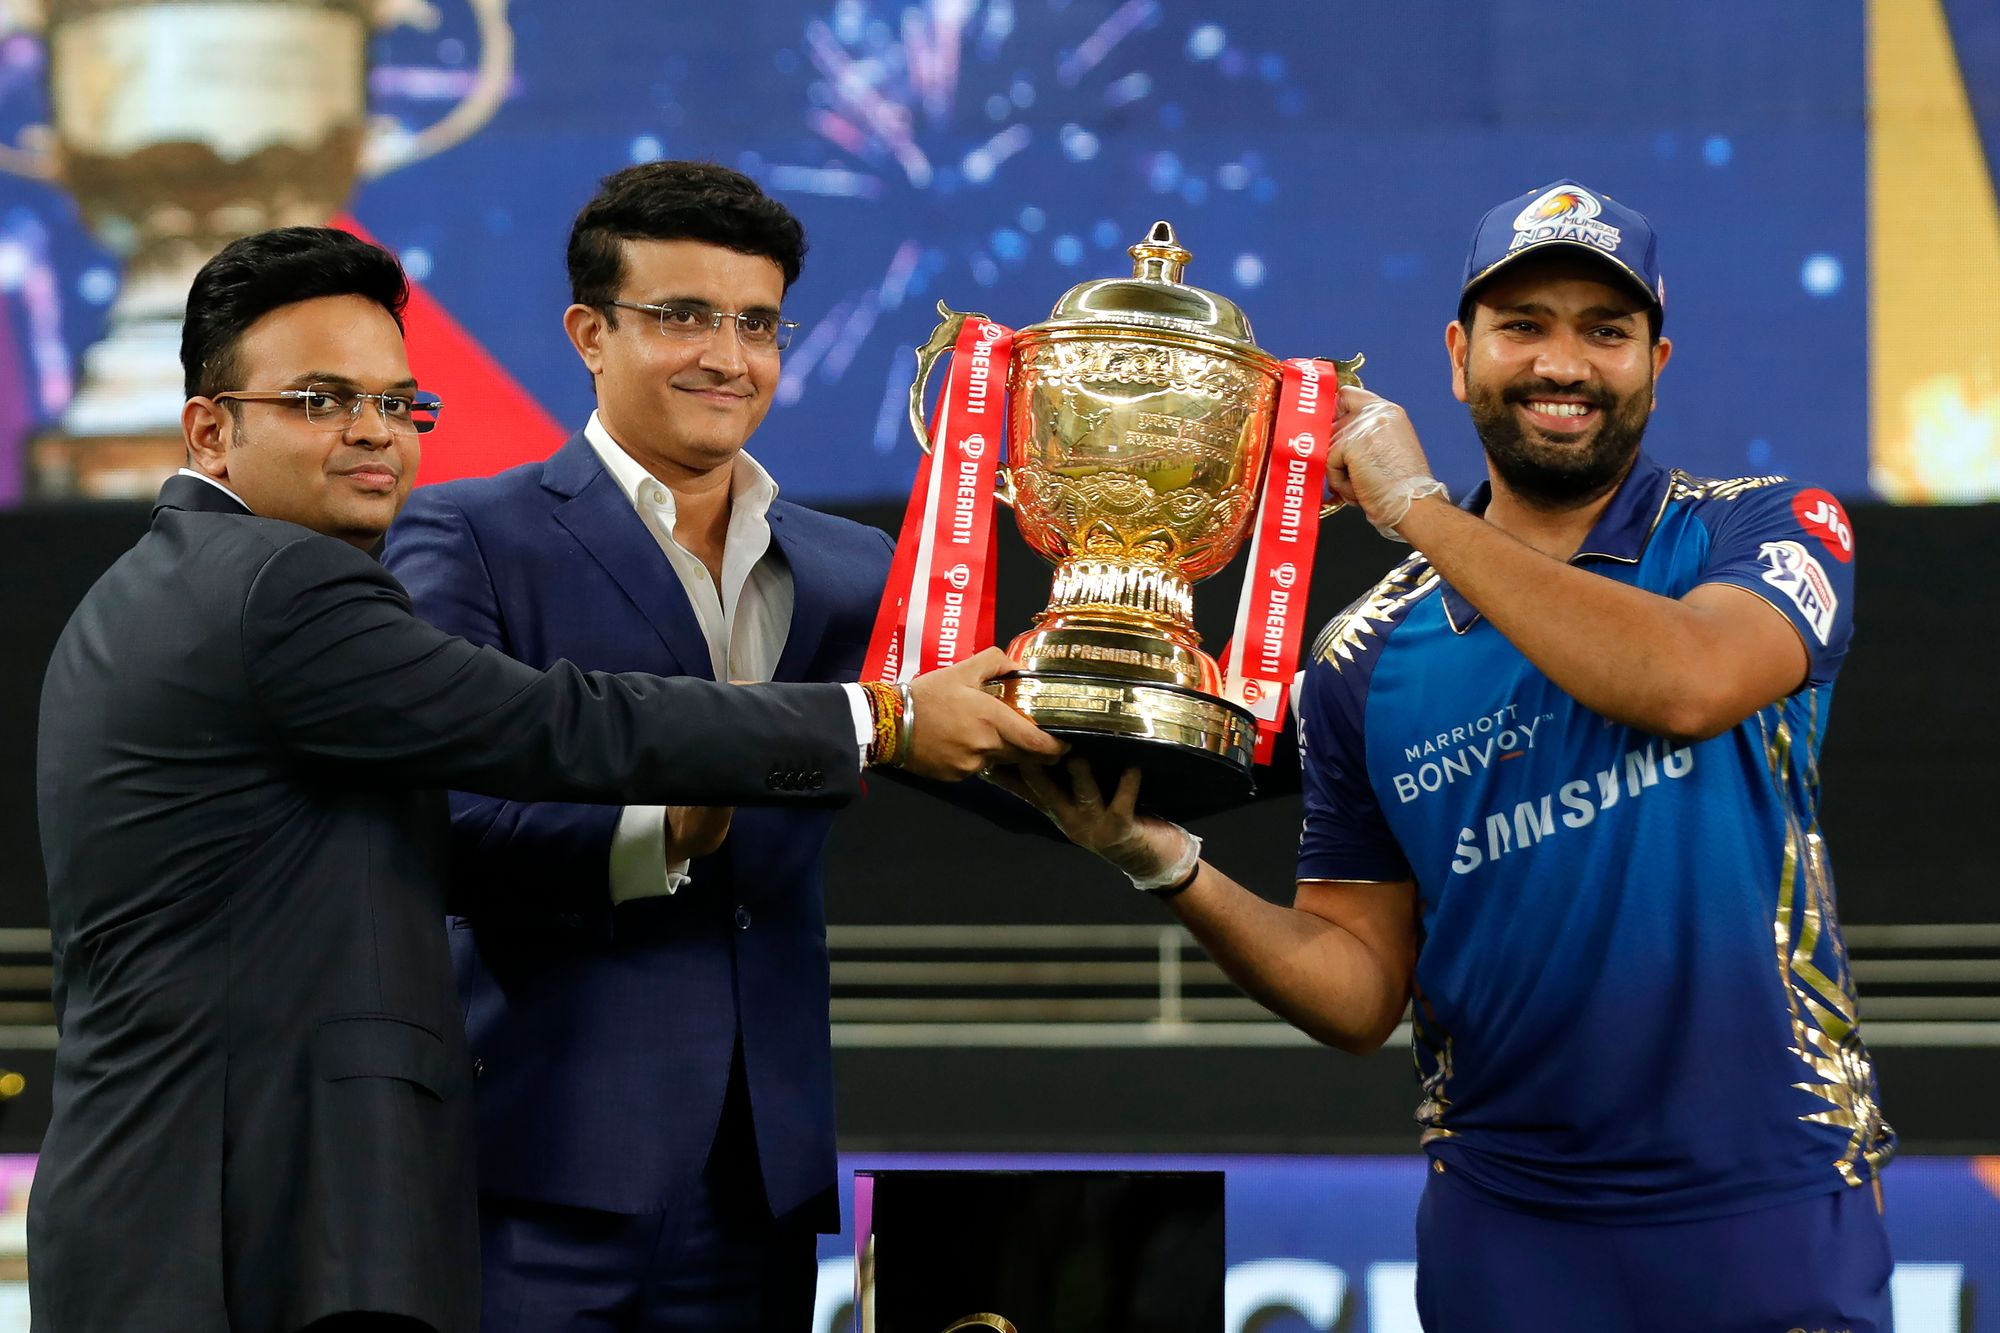 Rohit Sharma lifts the IPL trophy as MI captain for the 5th time and 6th time as a player | BCCI/IPL